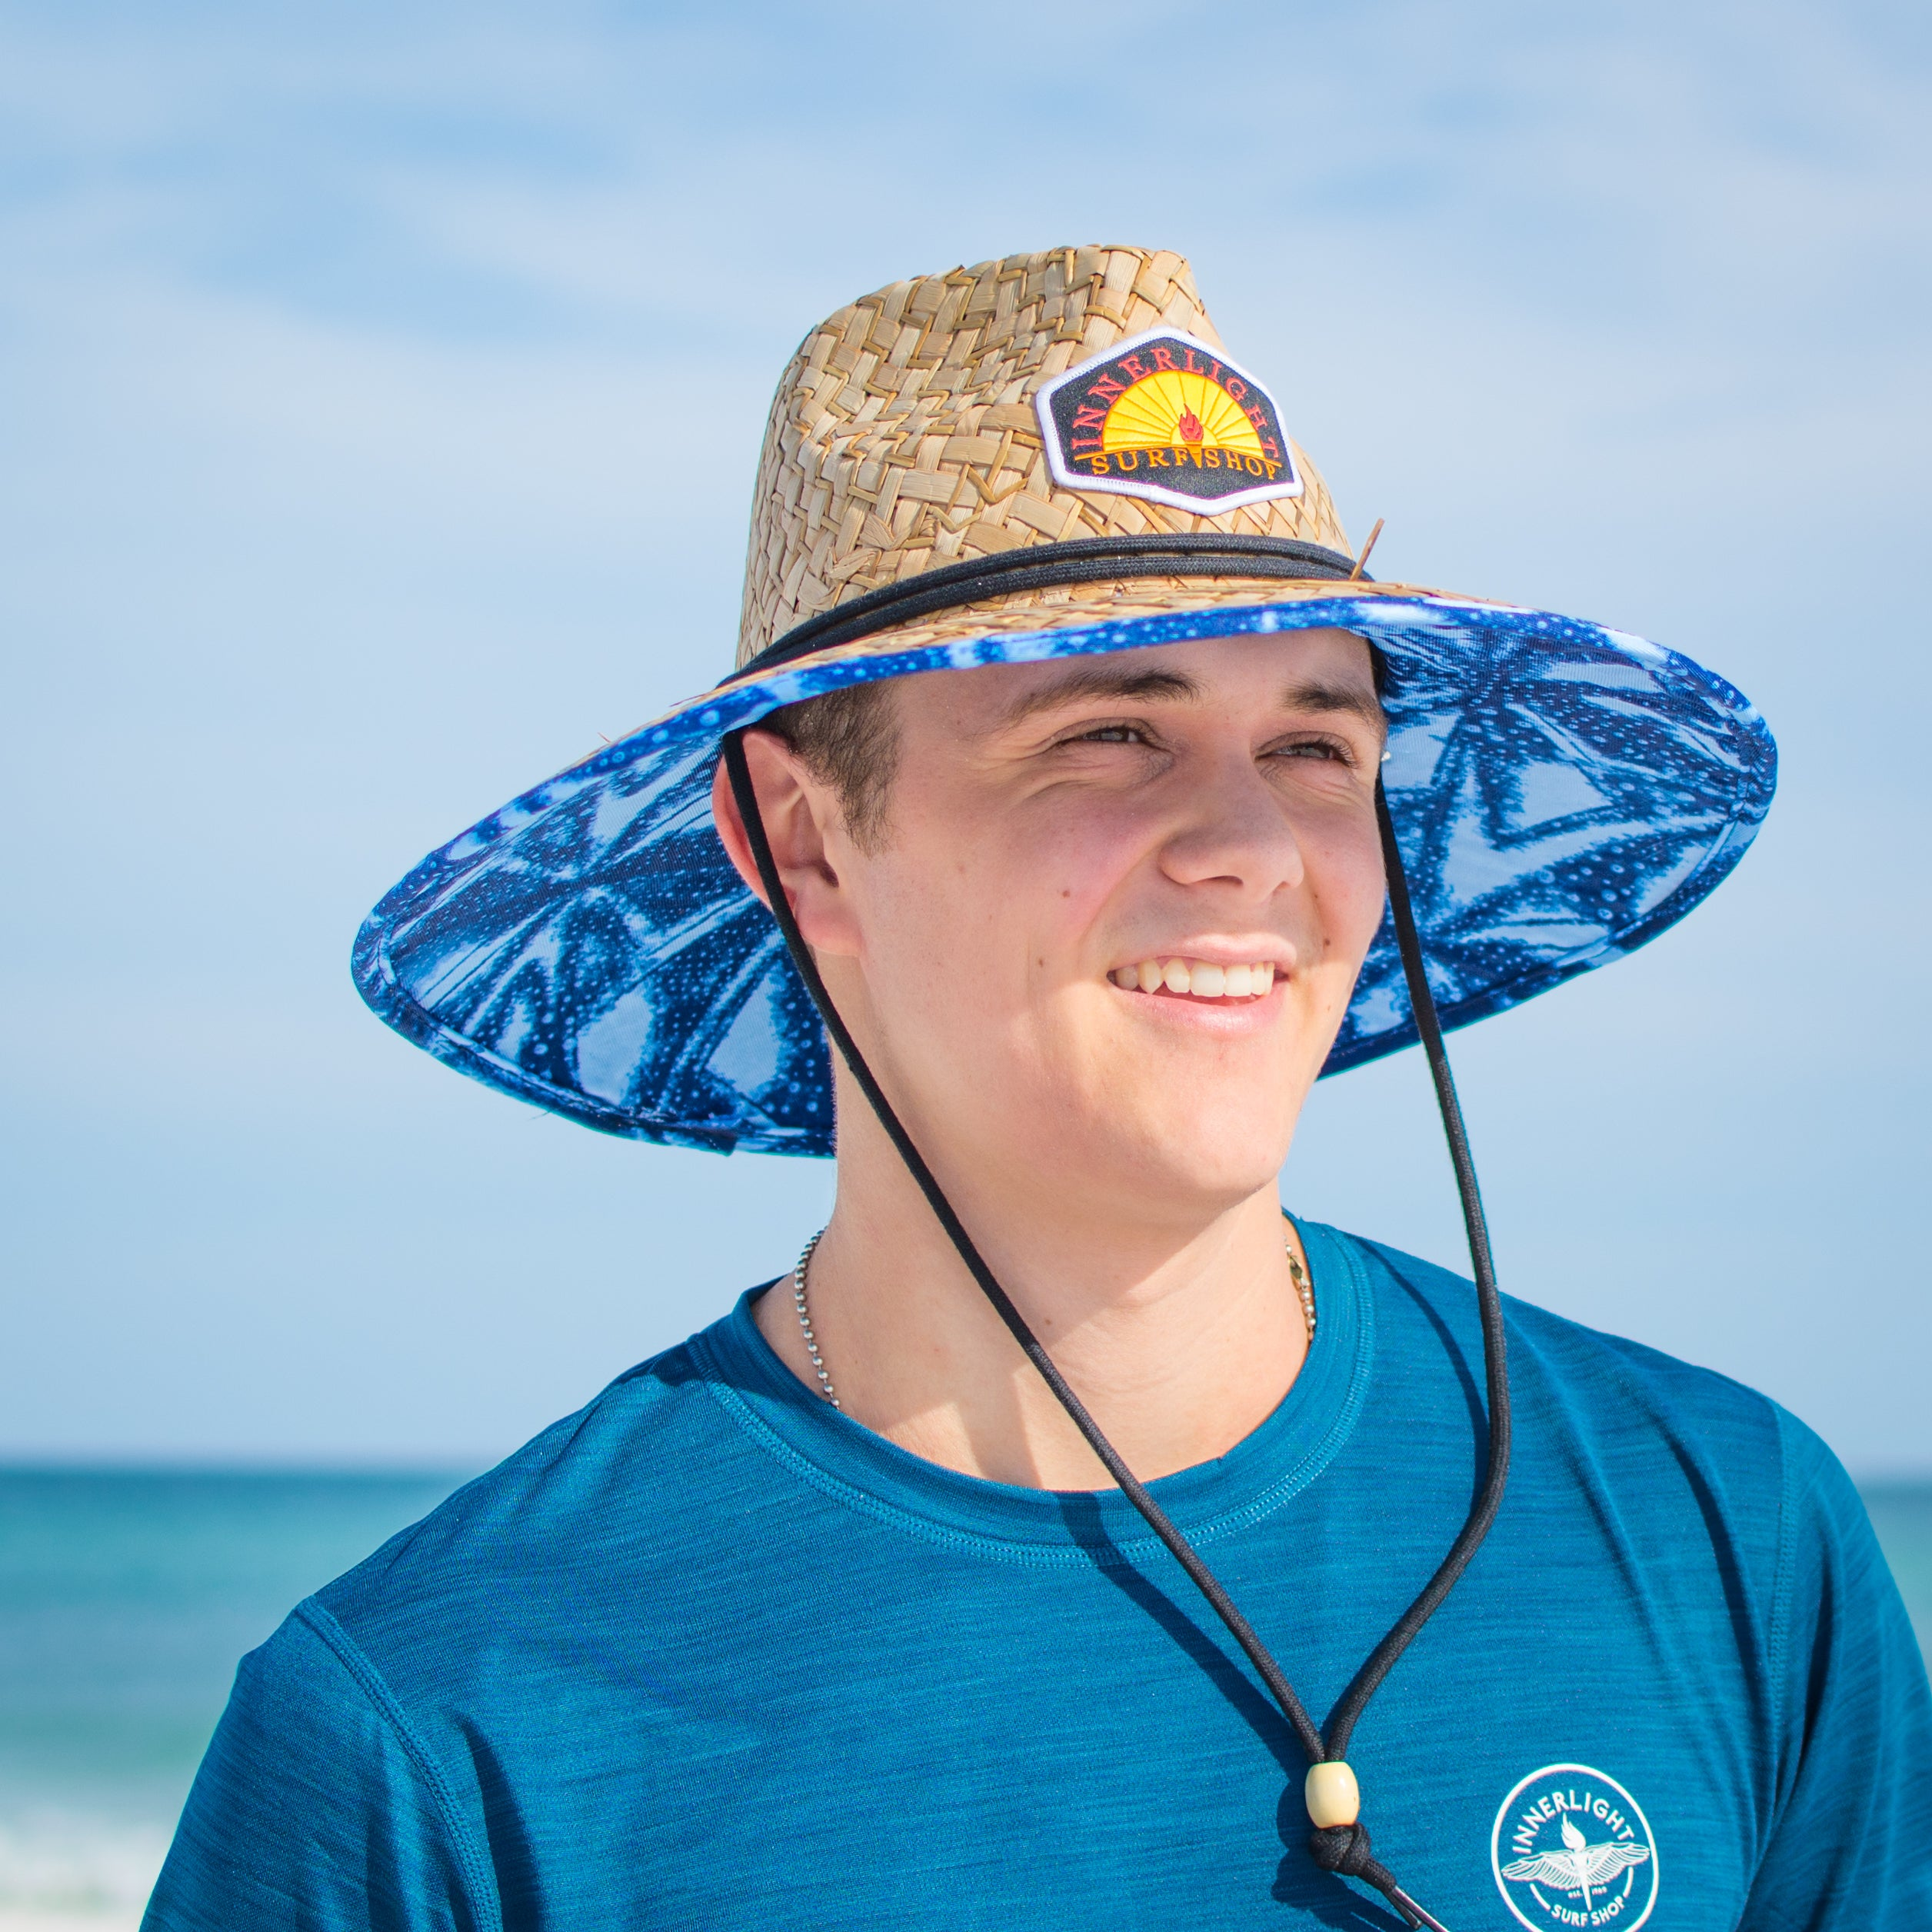 a592fc06 Innerlight Straw Hat - The ultimate beach day hat - Lifeguard Hat ...